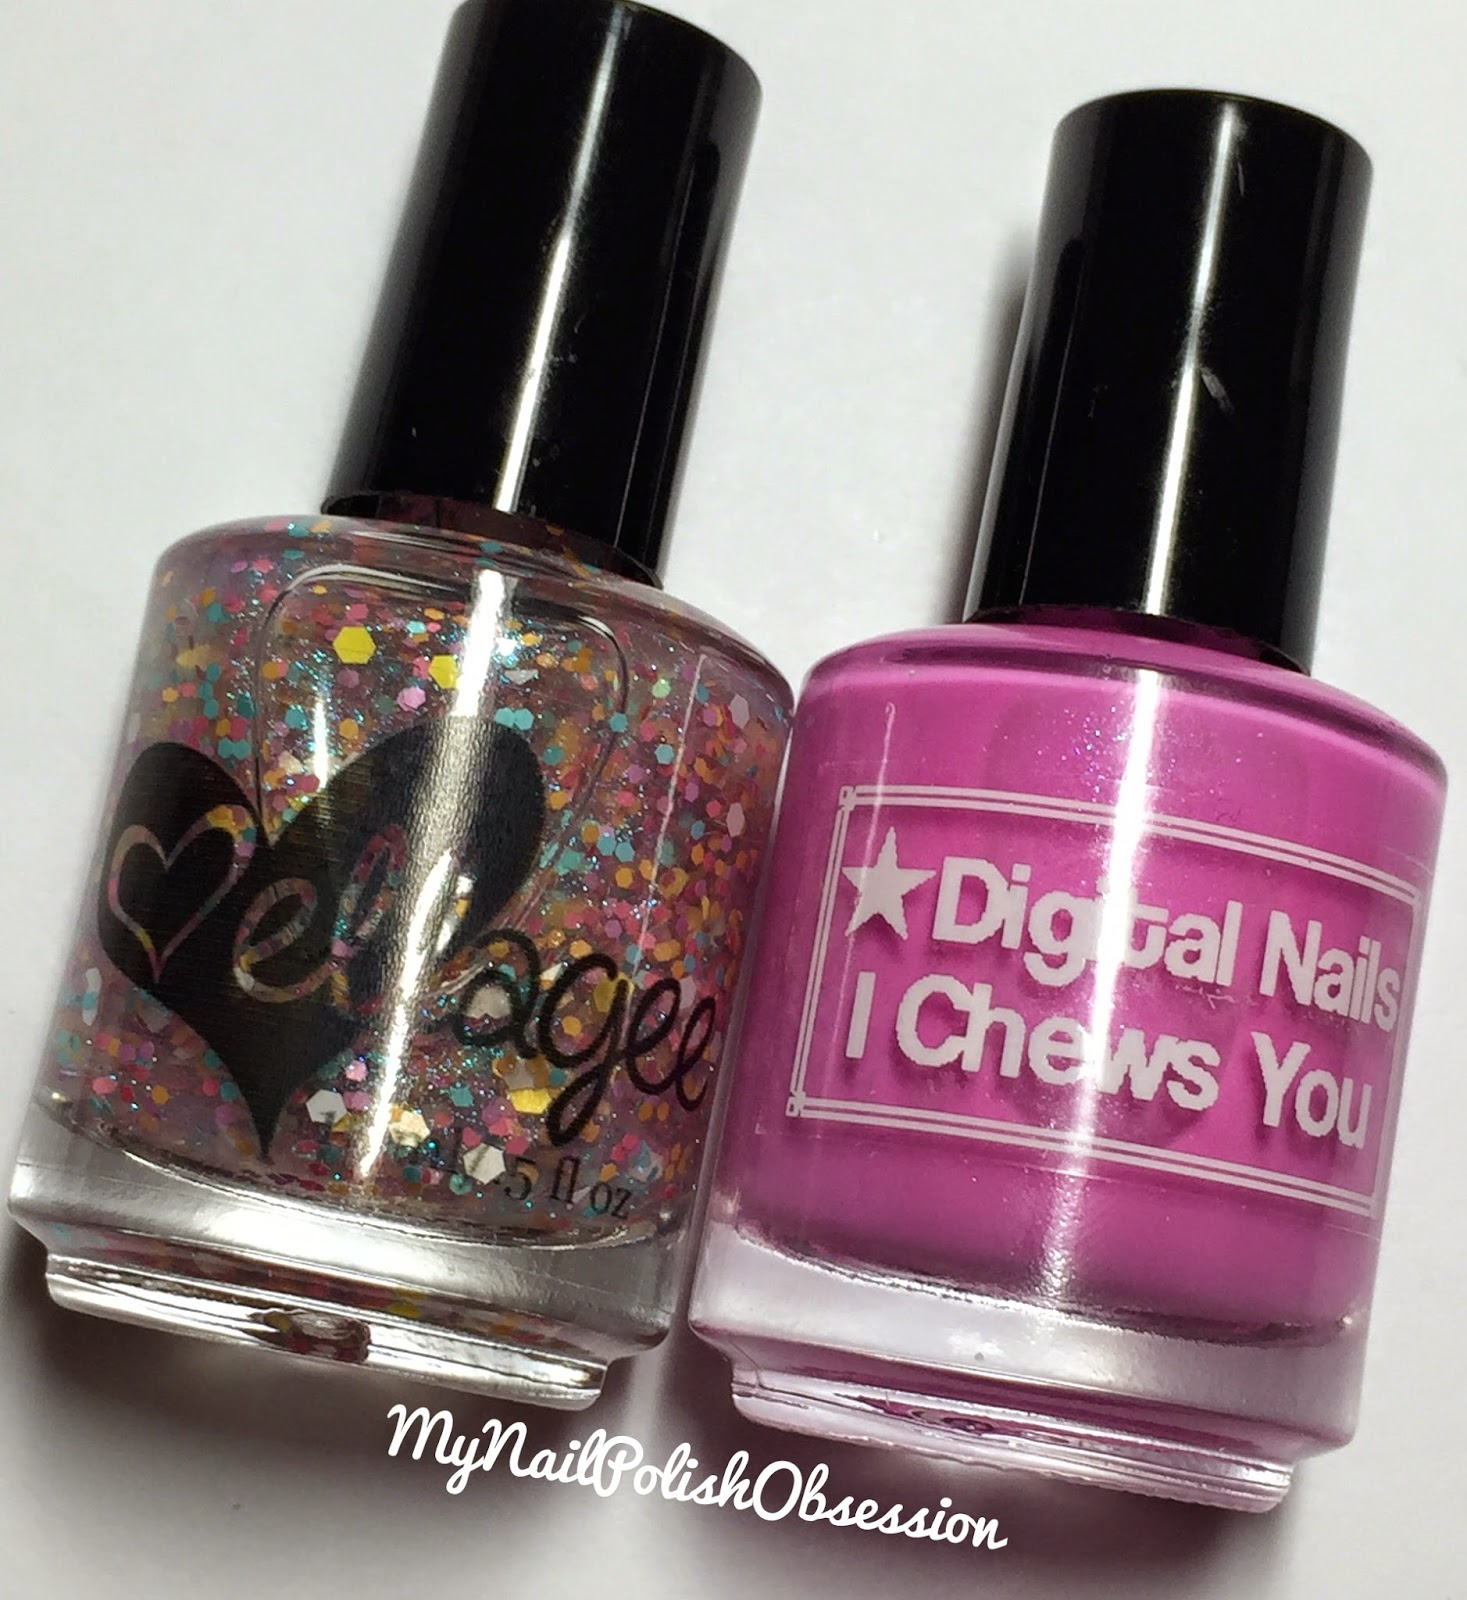 ellagee & Digital Nails Half Price Candy Day Duo: I Chews You & Secret Sugar Stash